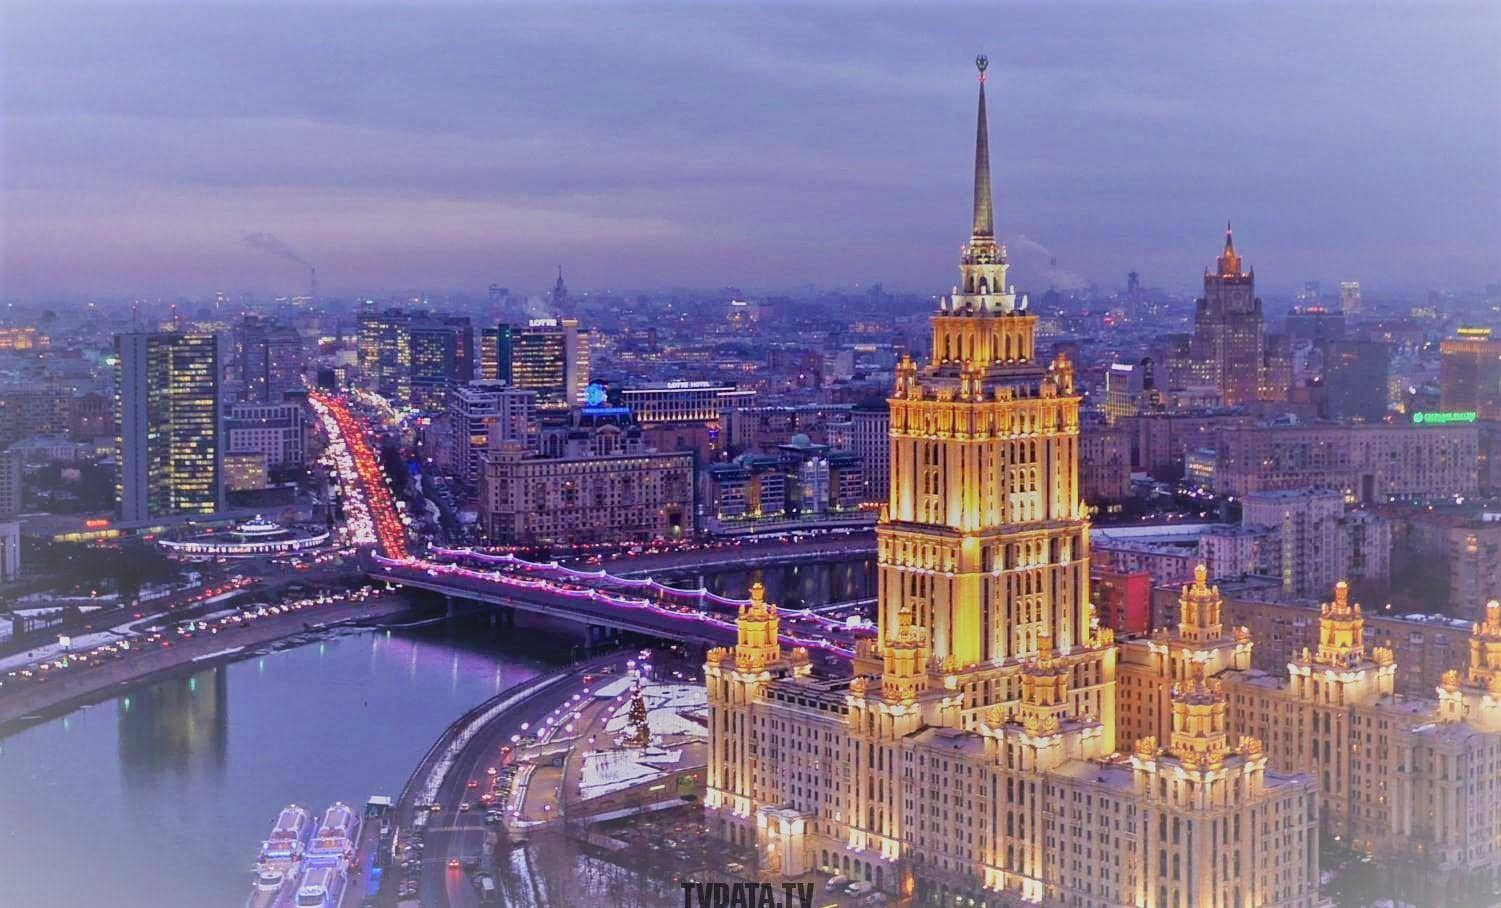 TVDATA MEDIA COMPANY WITH OFFICES IN MOSCOW AND LONDON